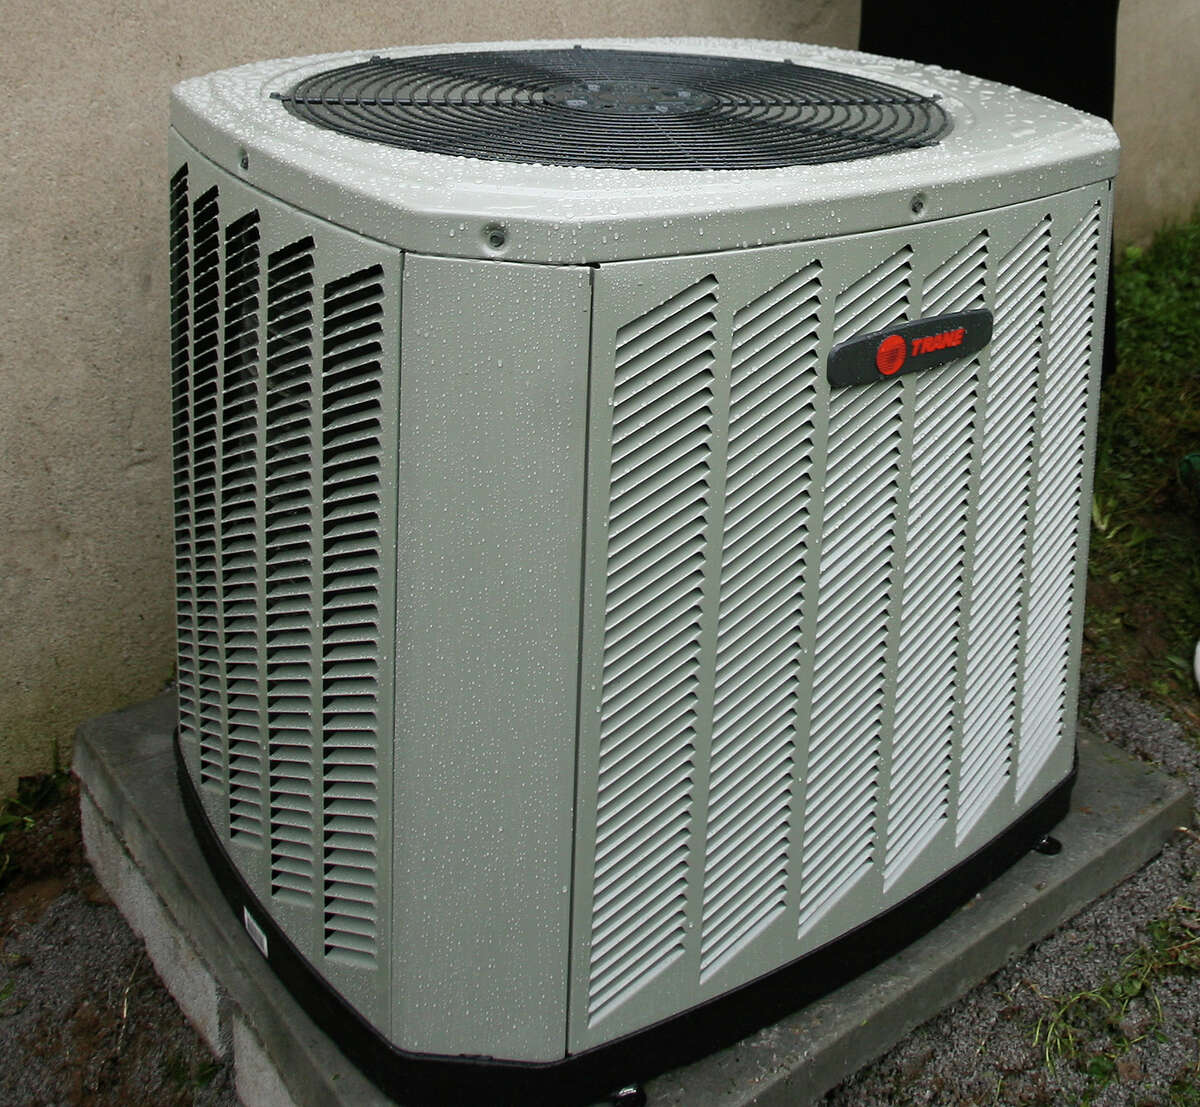 Central Air Conditioners Rebate: $100-$275/Ton